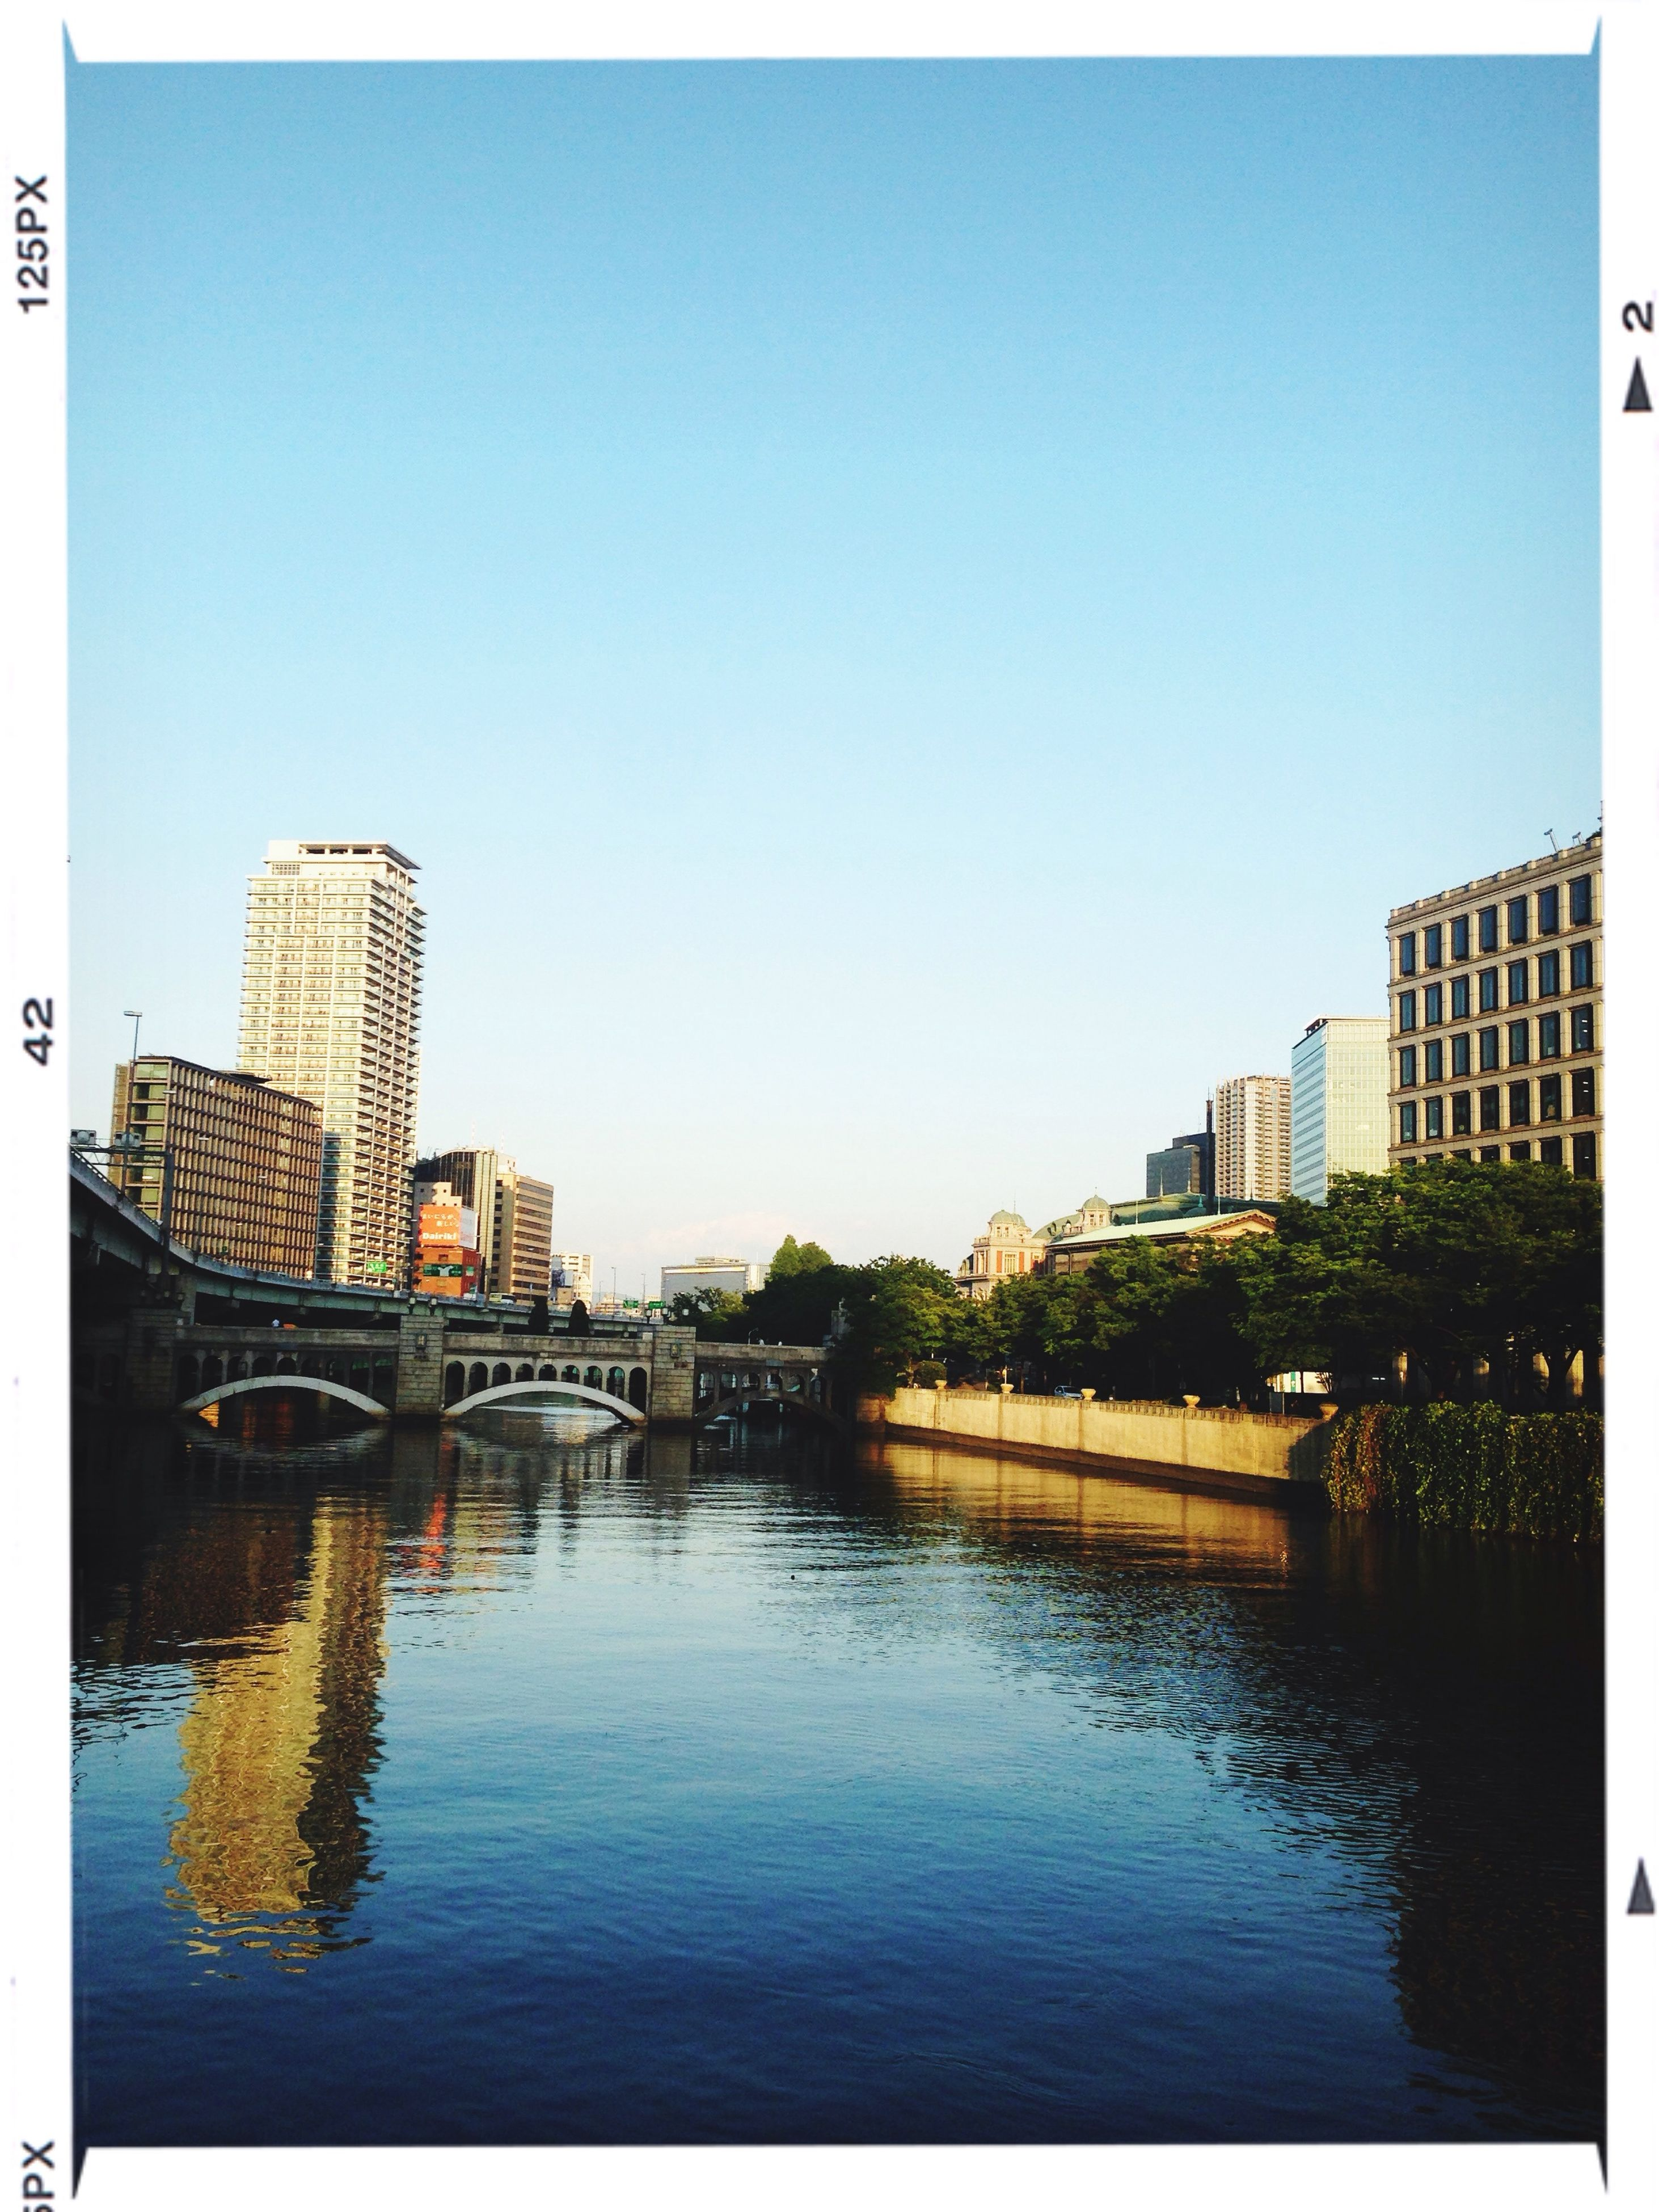 architecture, building exterior, built structure, clear sky, water, blue, transfer print, copy space, waterfront, reflection, river, auto post production filter, city, lake, day, outdoors, building, no people, residential building, residential structure